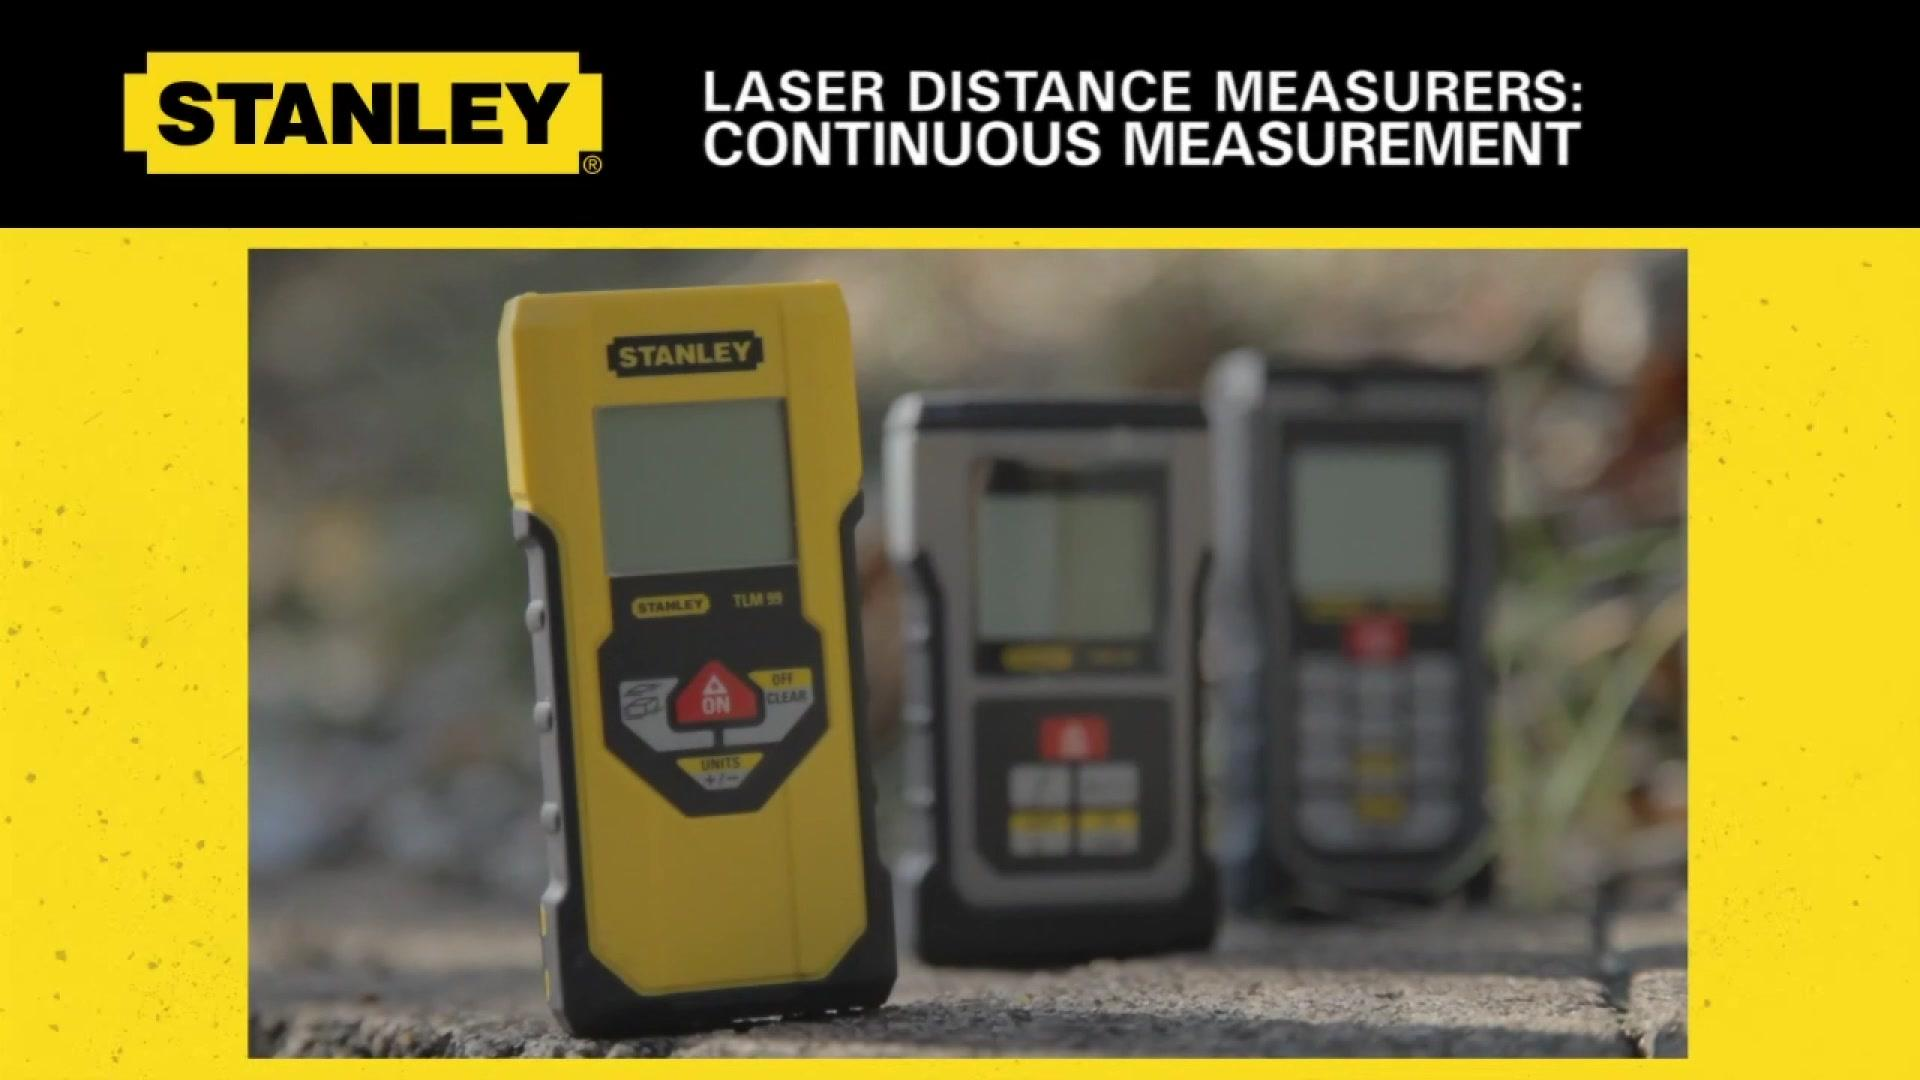 Continuous Measurement on Stanley LDM's | STANLEY